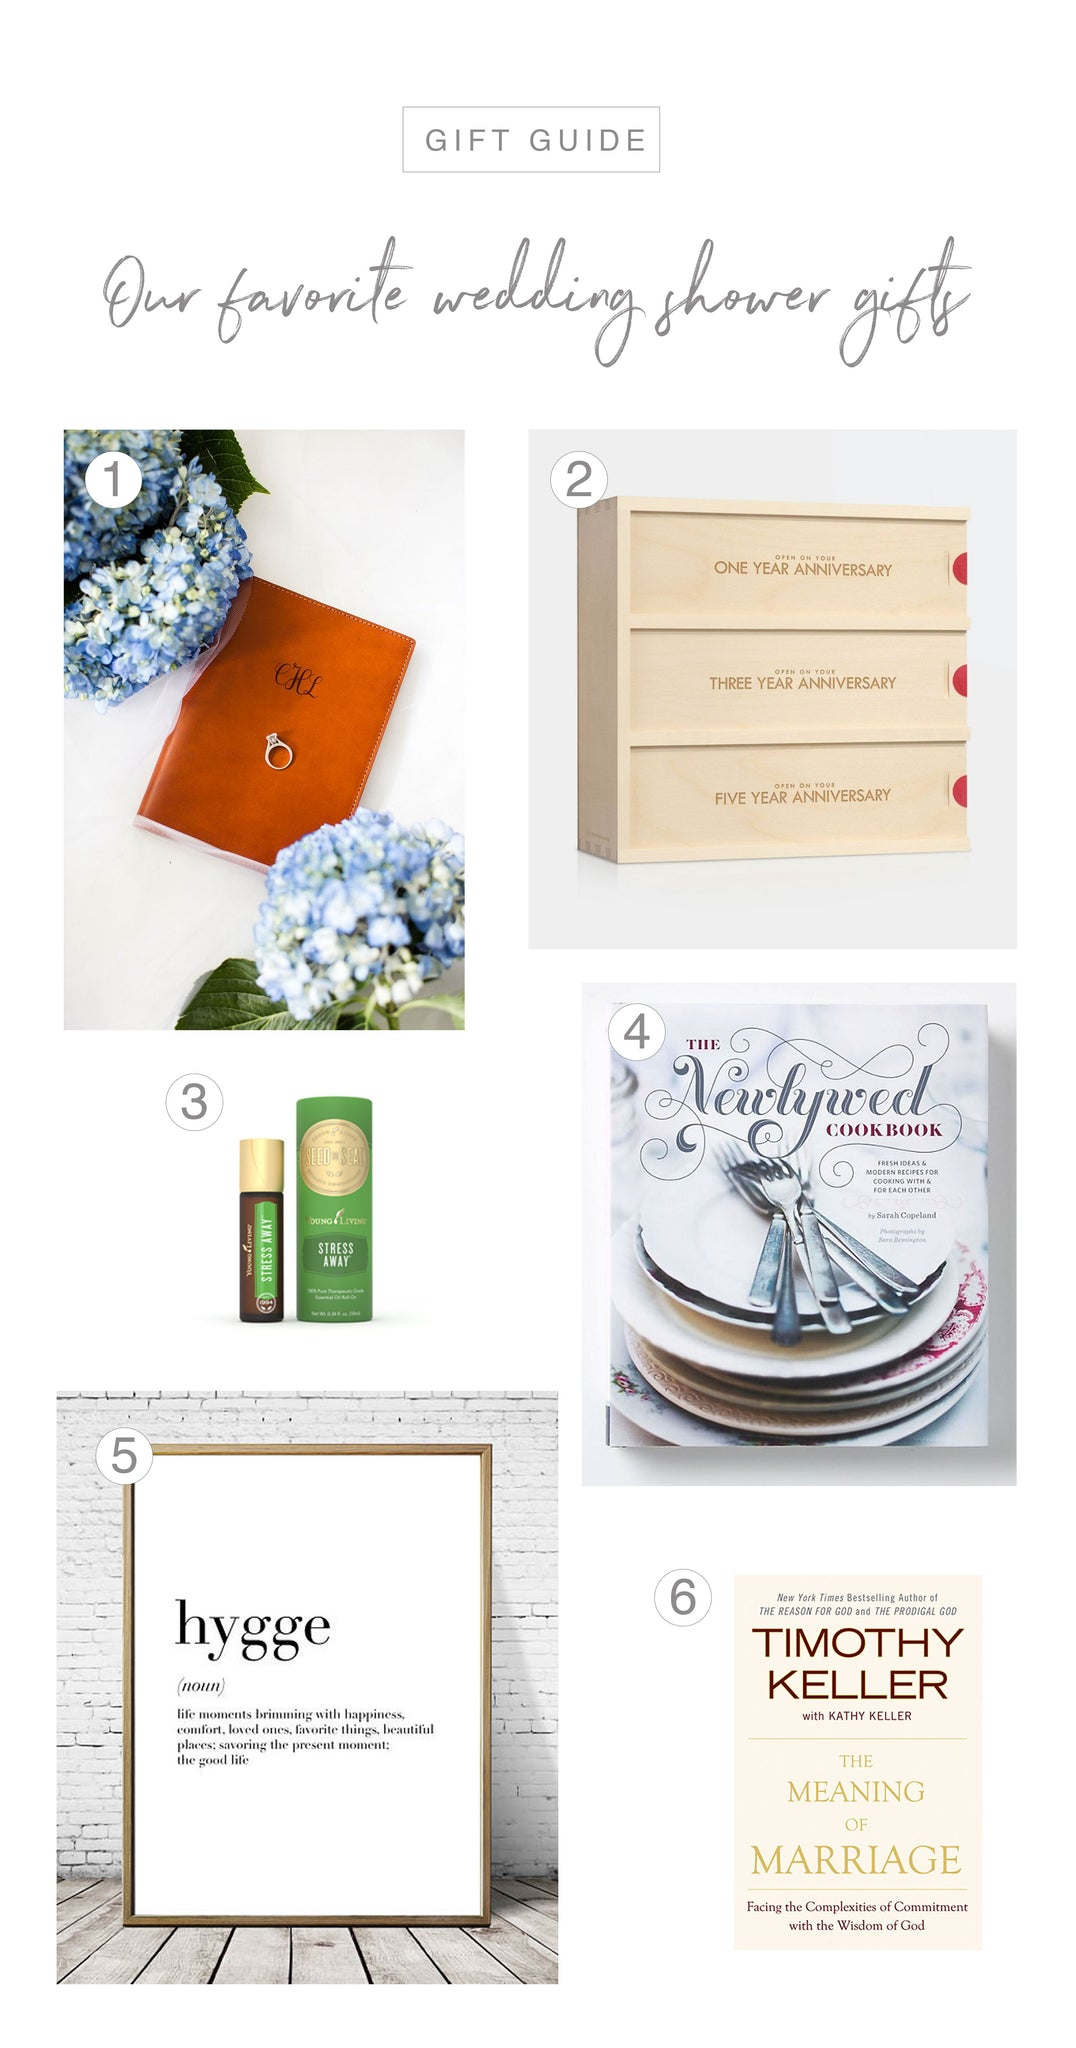 FOTO Blog | Our Favorite Wedding Shower Gifts Gift Guide!